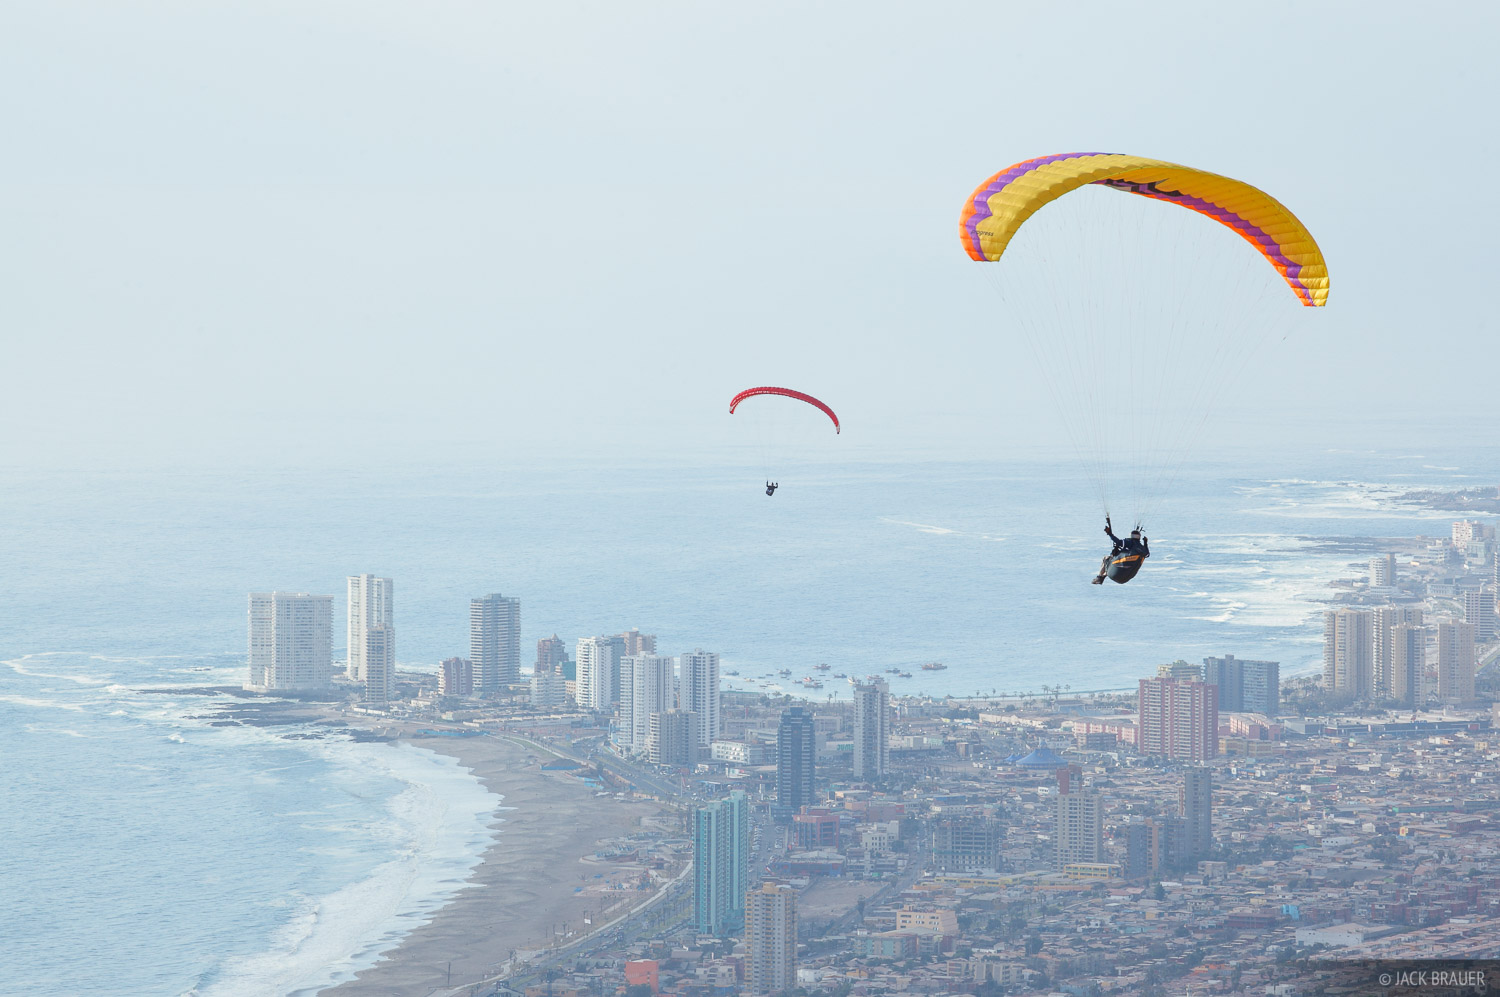 Chile,Iquique,South America, paragliding, photo